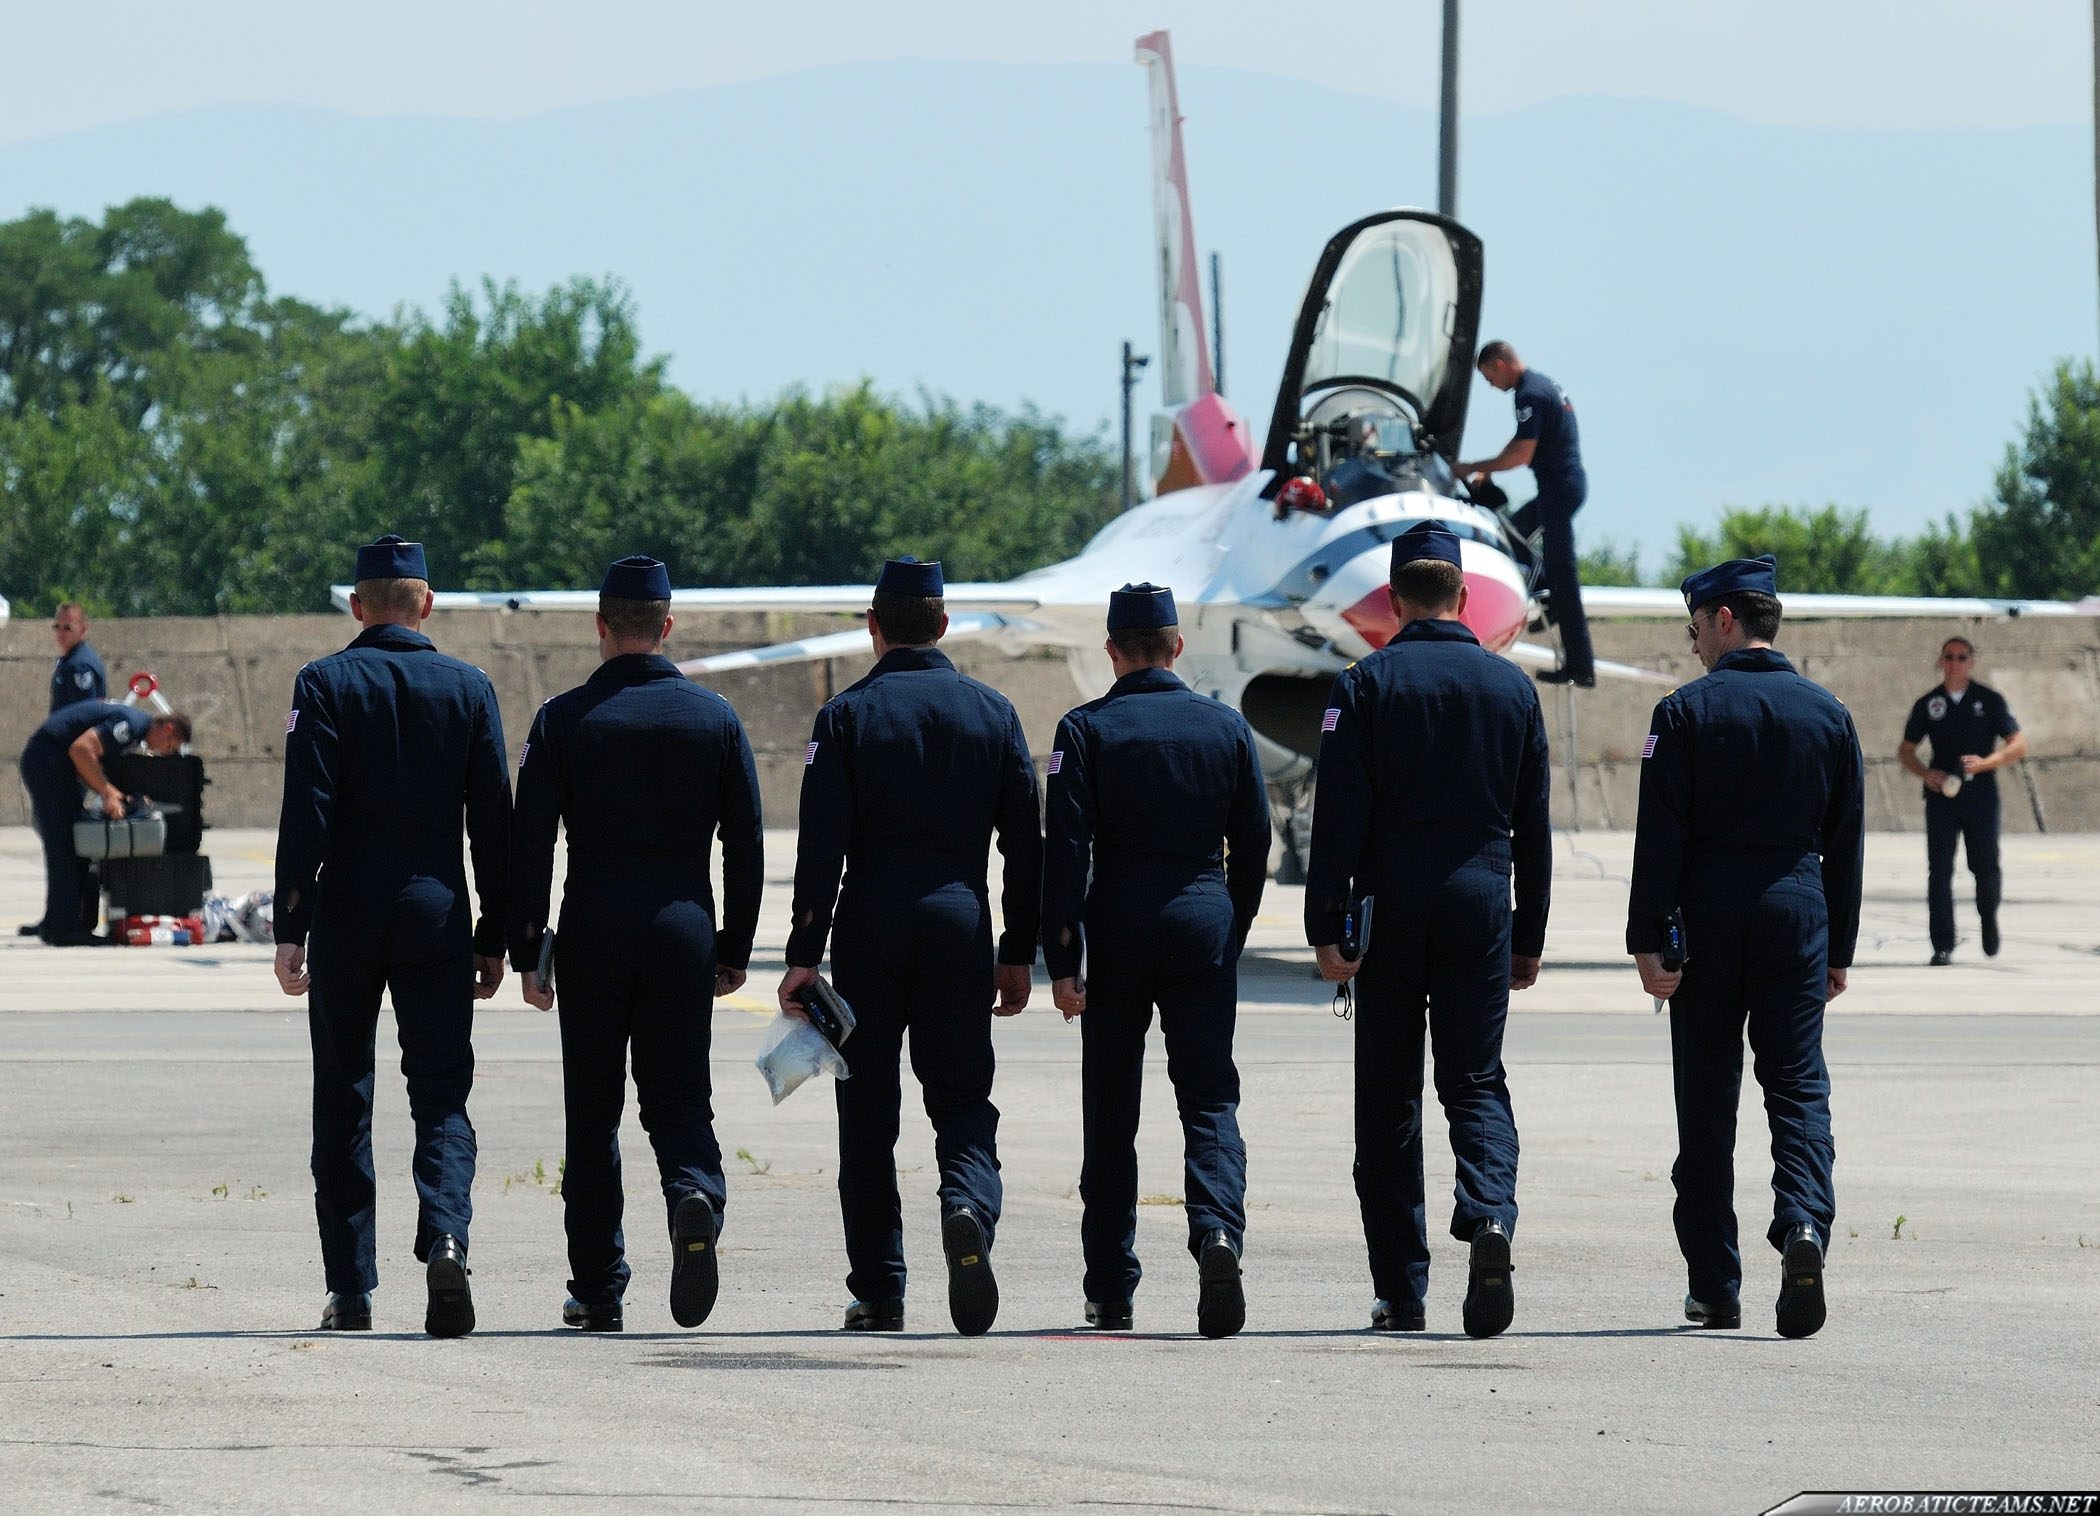 Thunderbirds pilots, June 24